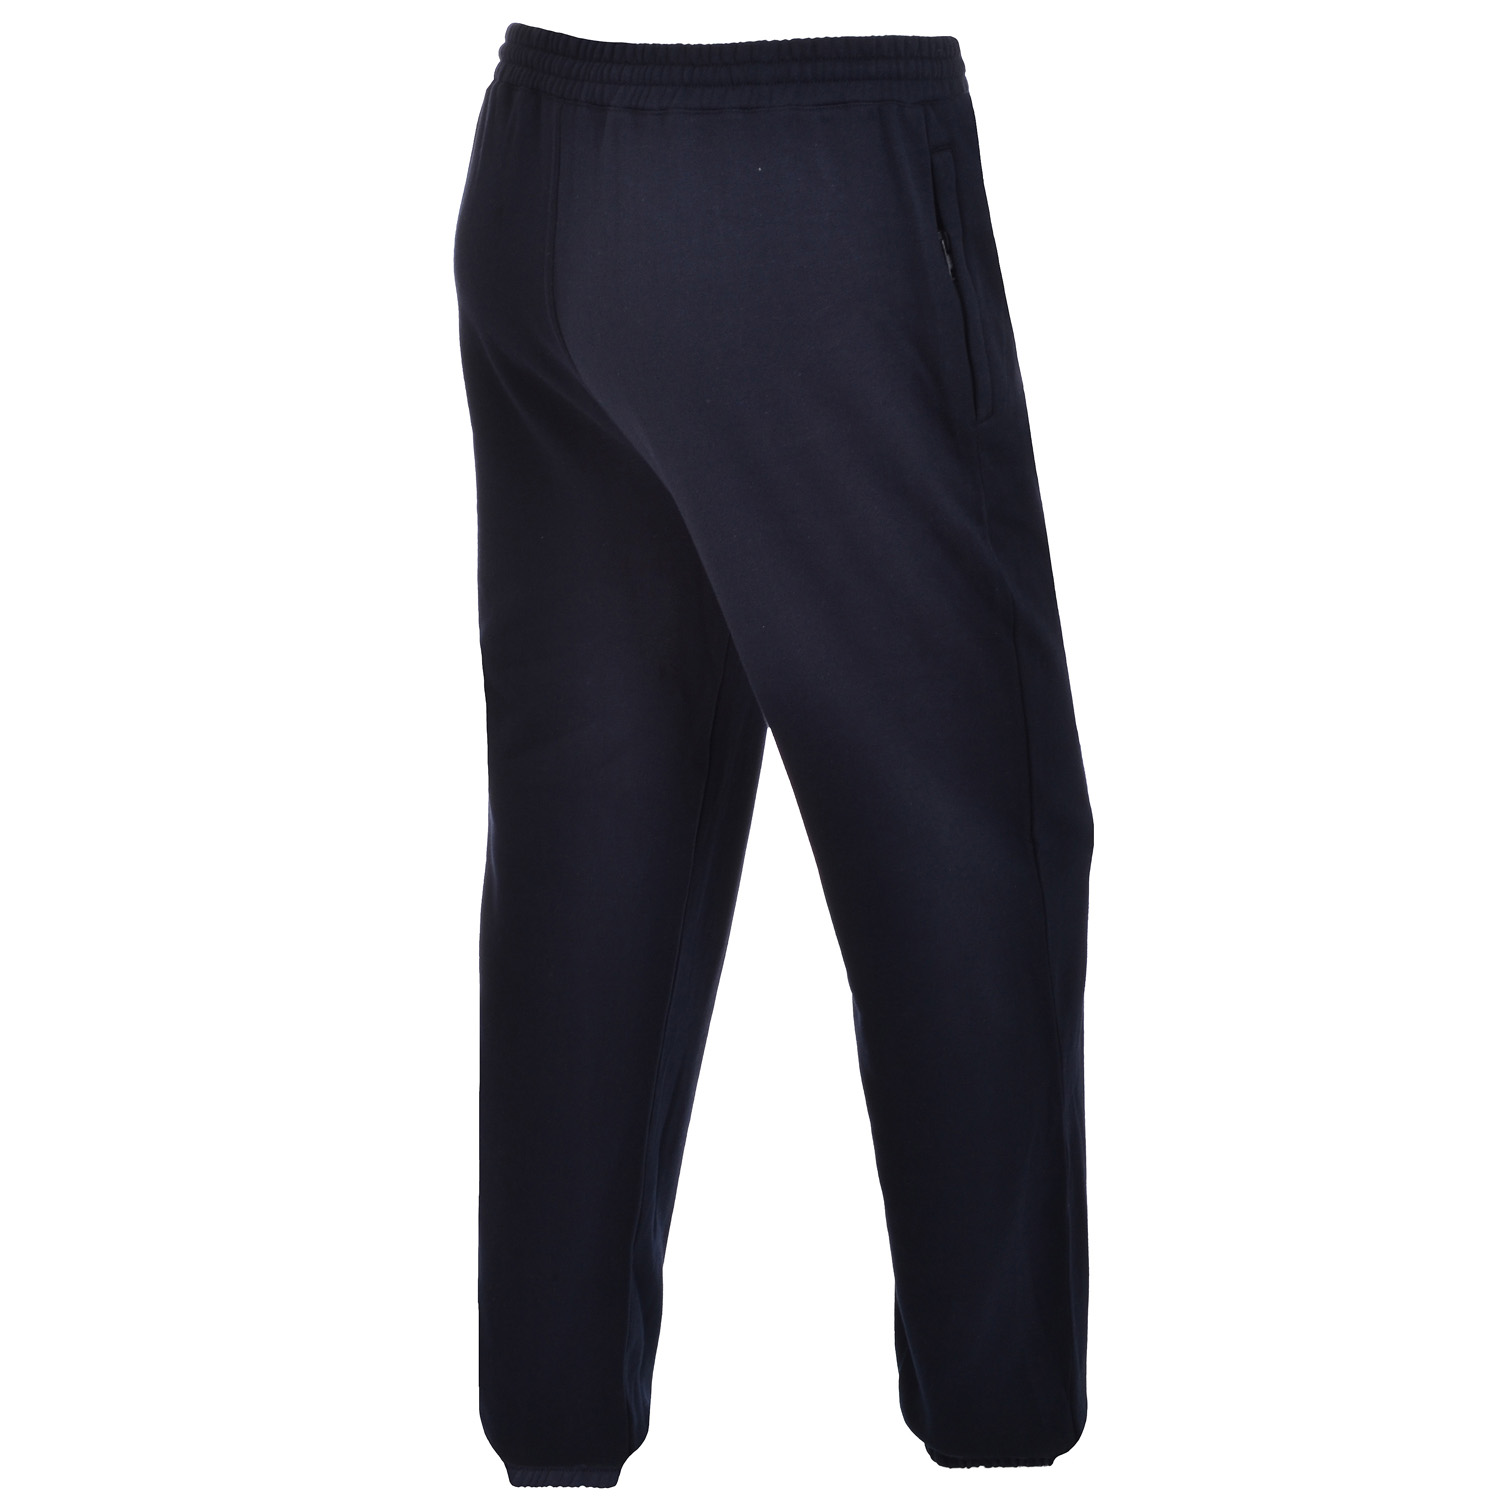 Find great deals on eBay for mens jogging pants with pockets. Shop with confidence.